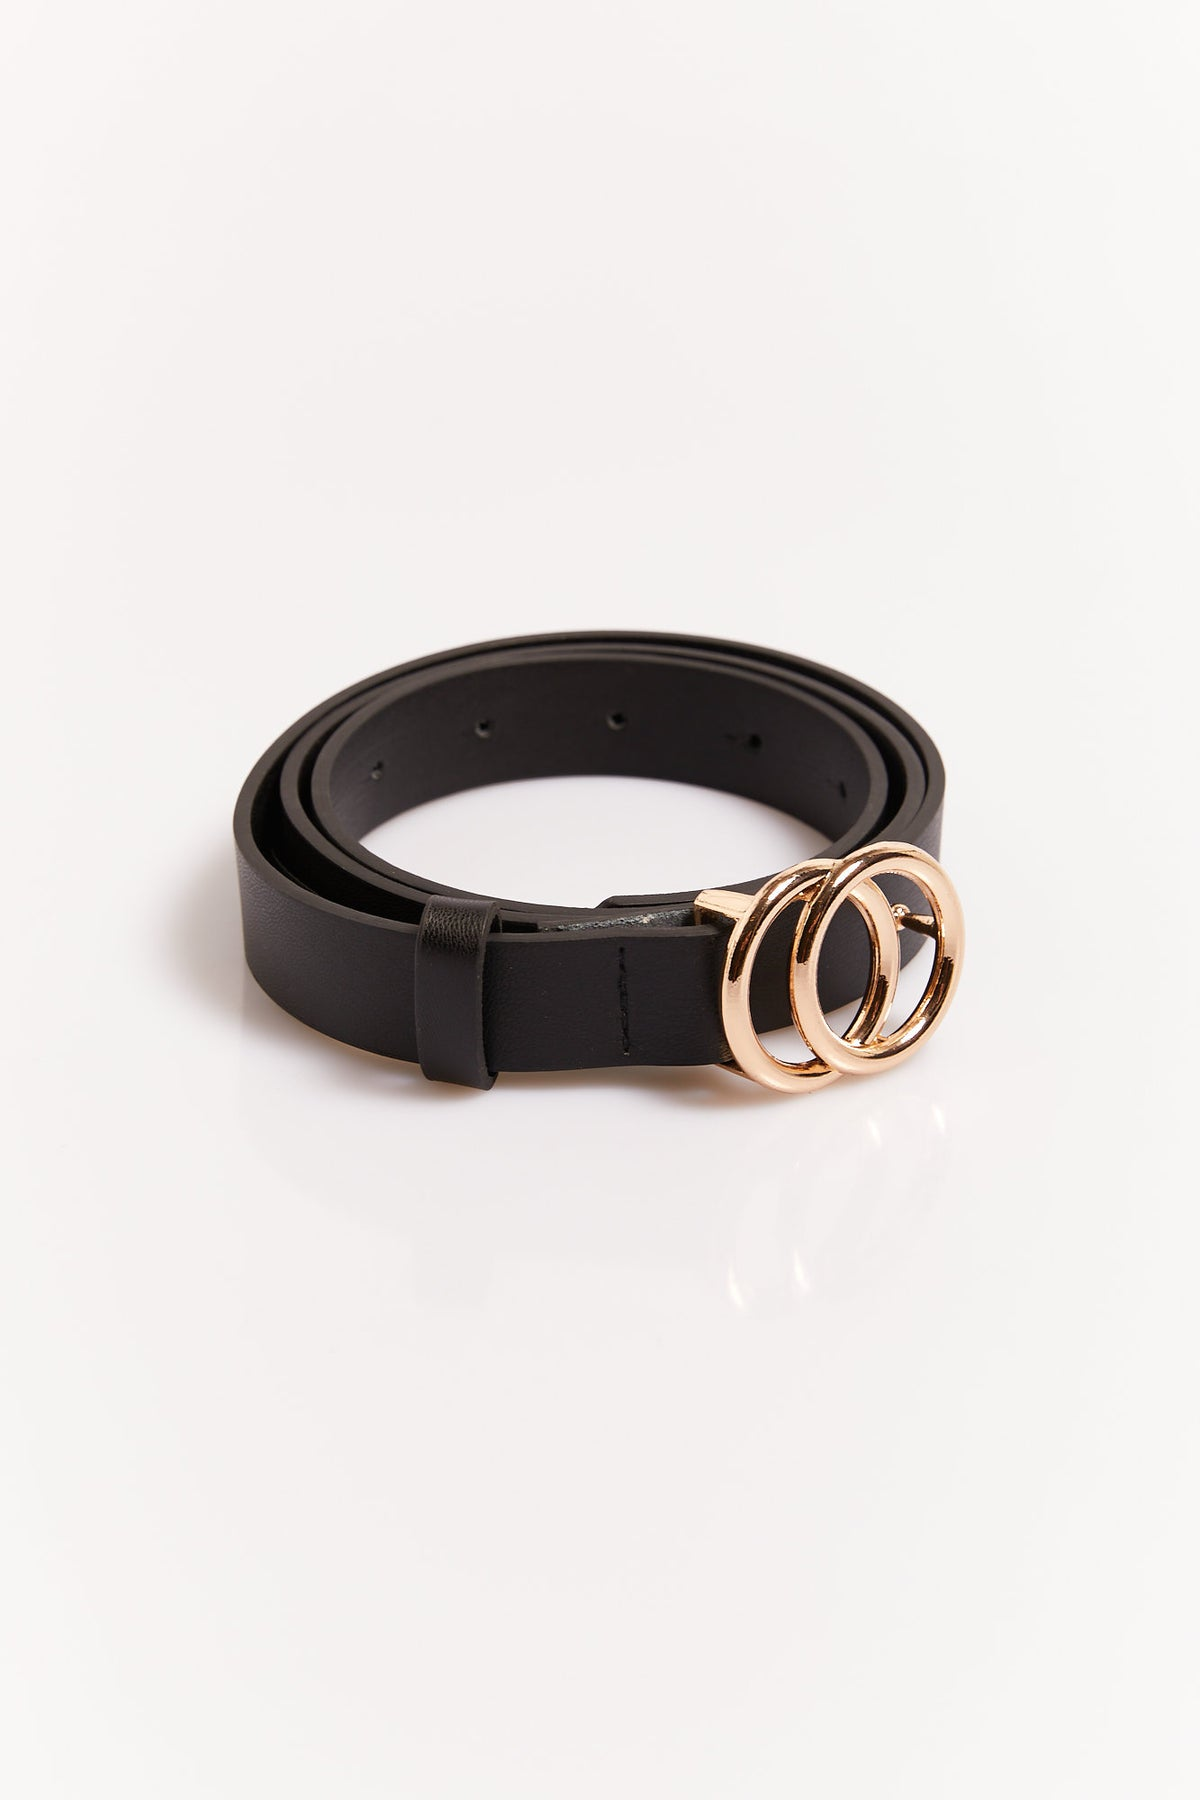 Mini Circle Belt Black/Gold